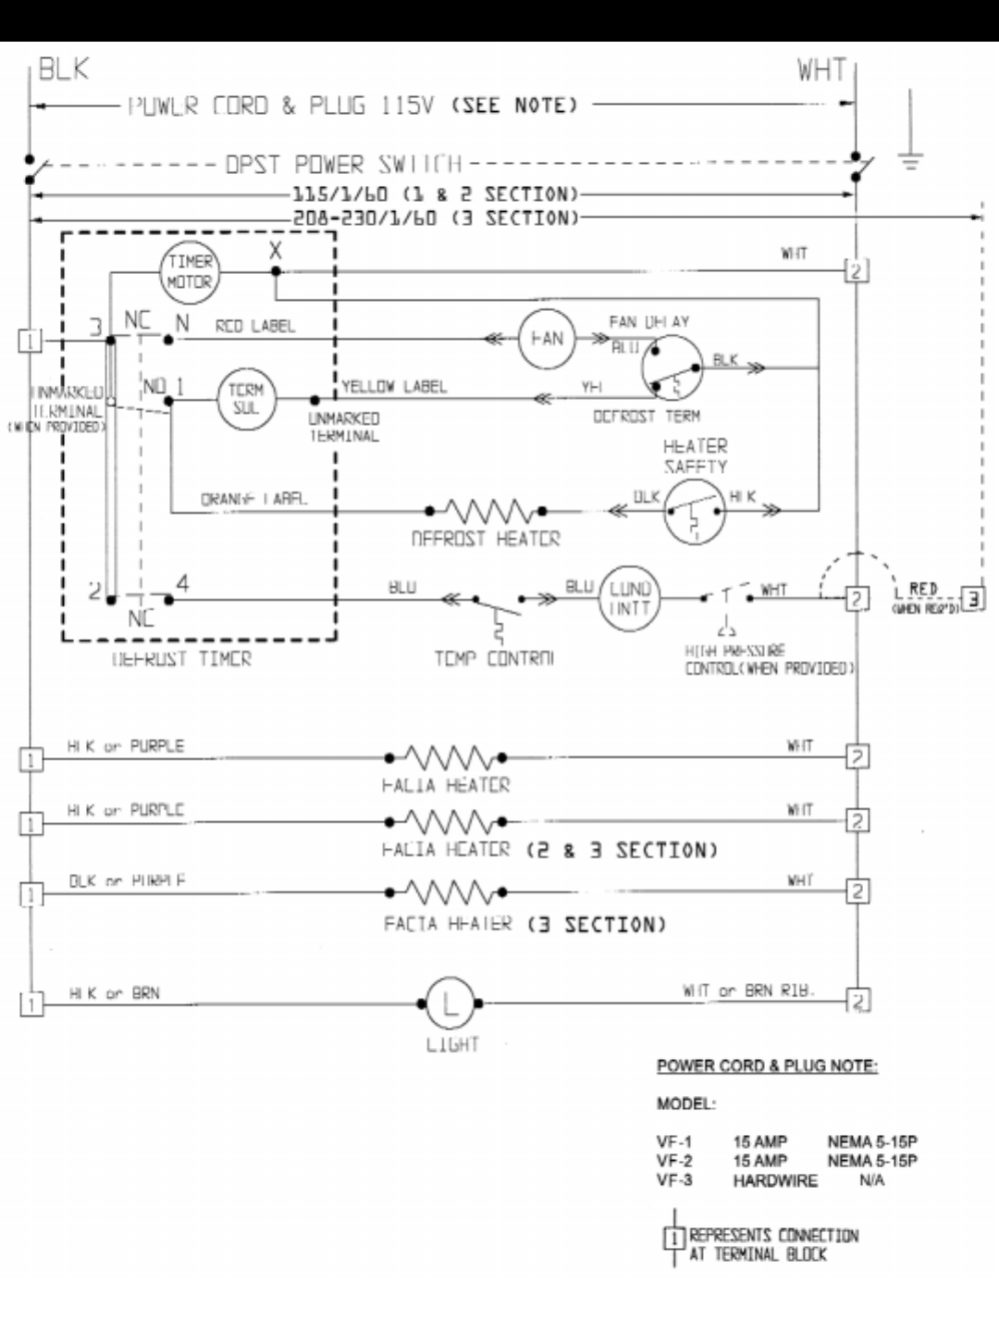 medium resolution of page of victory refrigeration refrigerator vr user guide 1 2 3 section zer wiring diagram